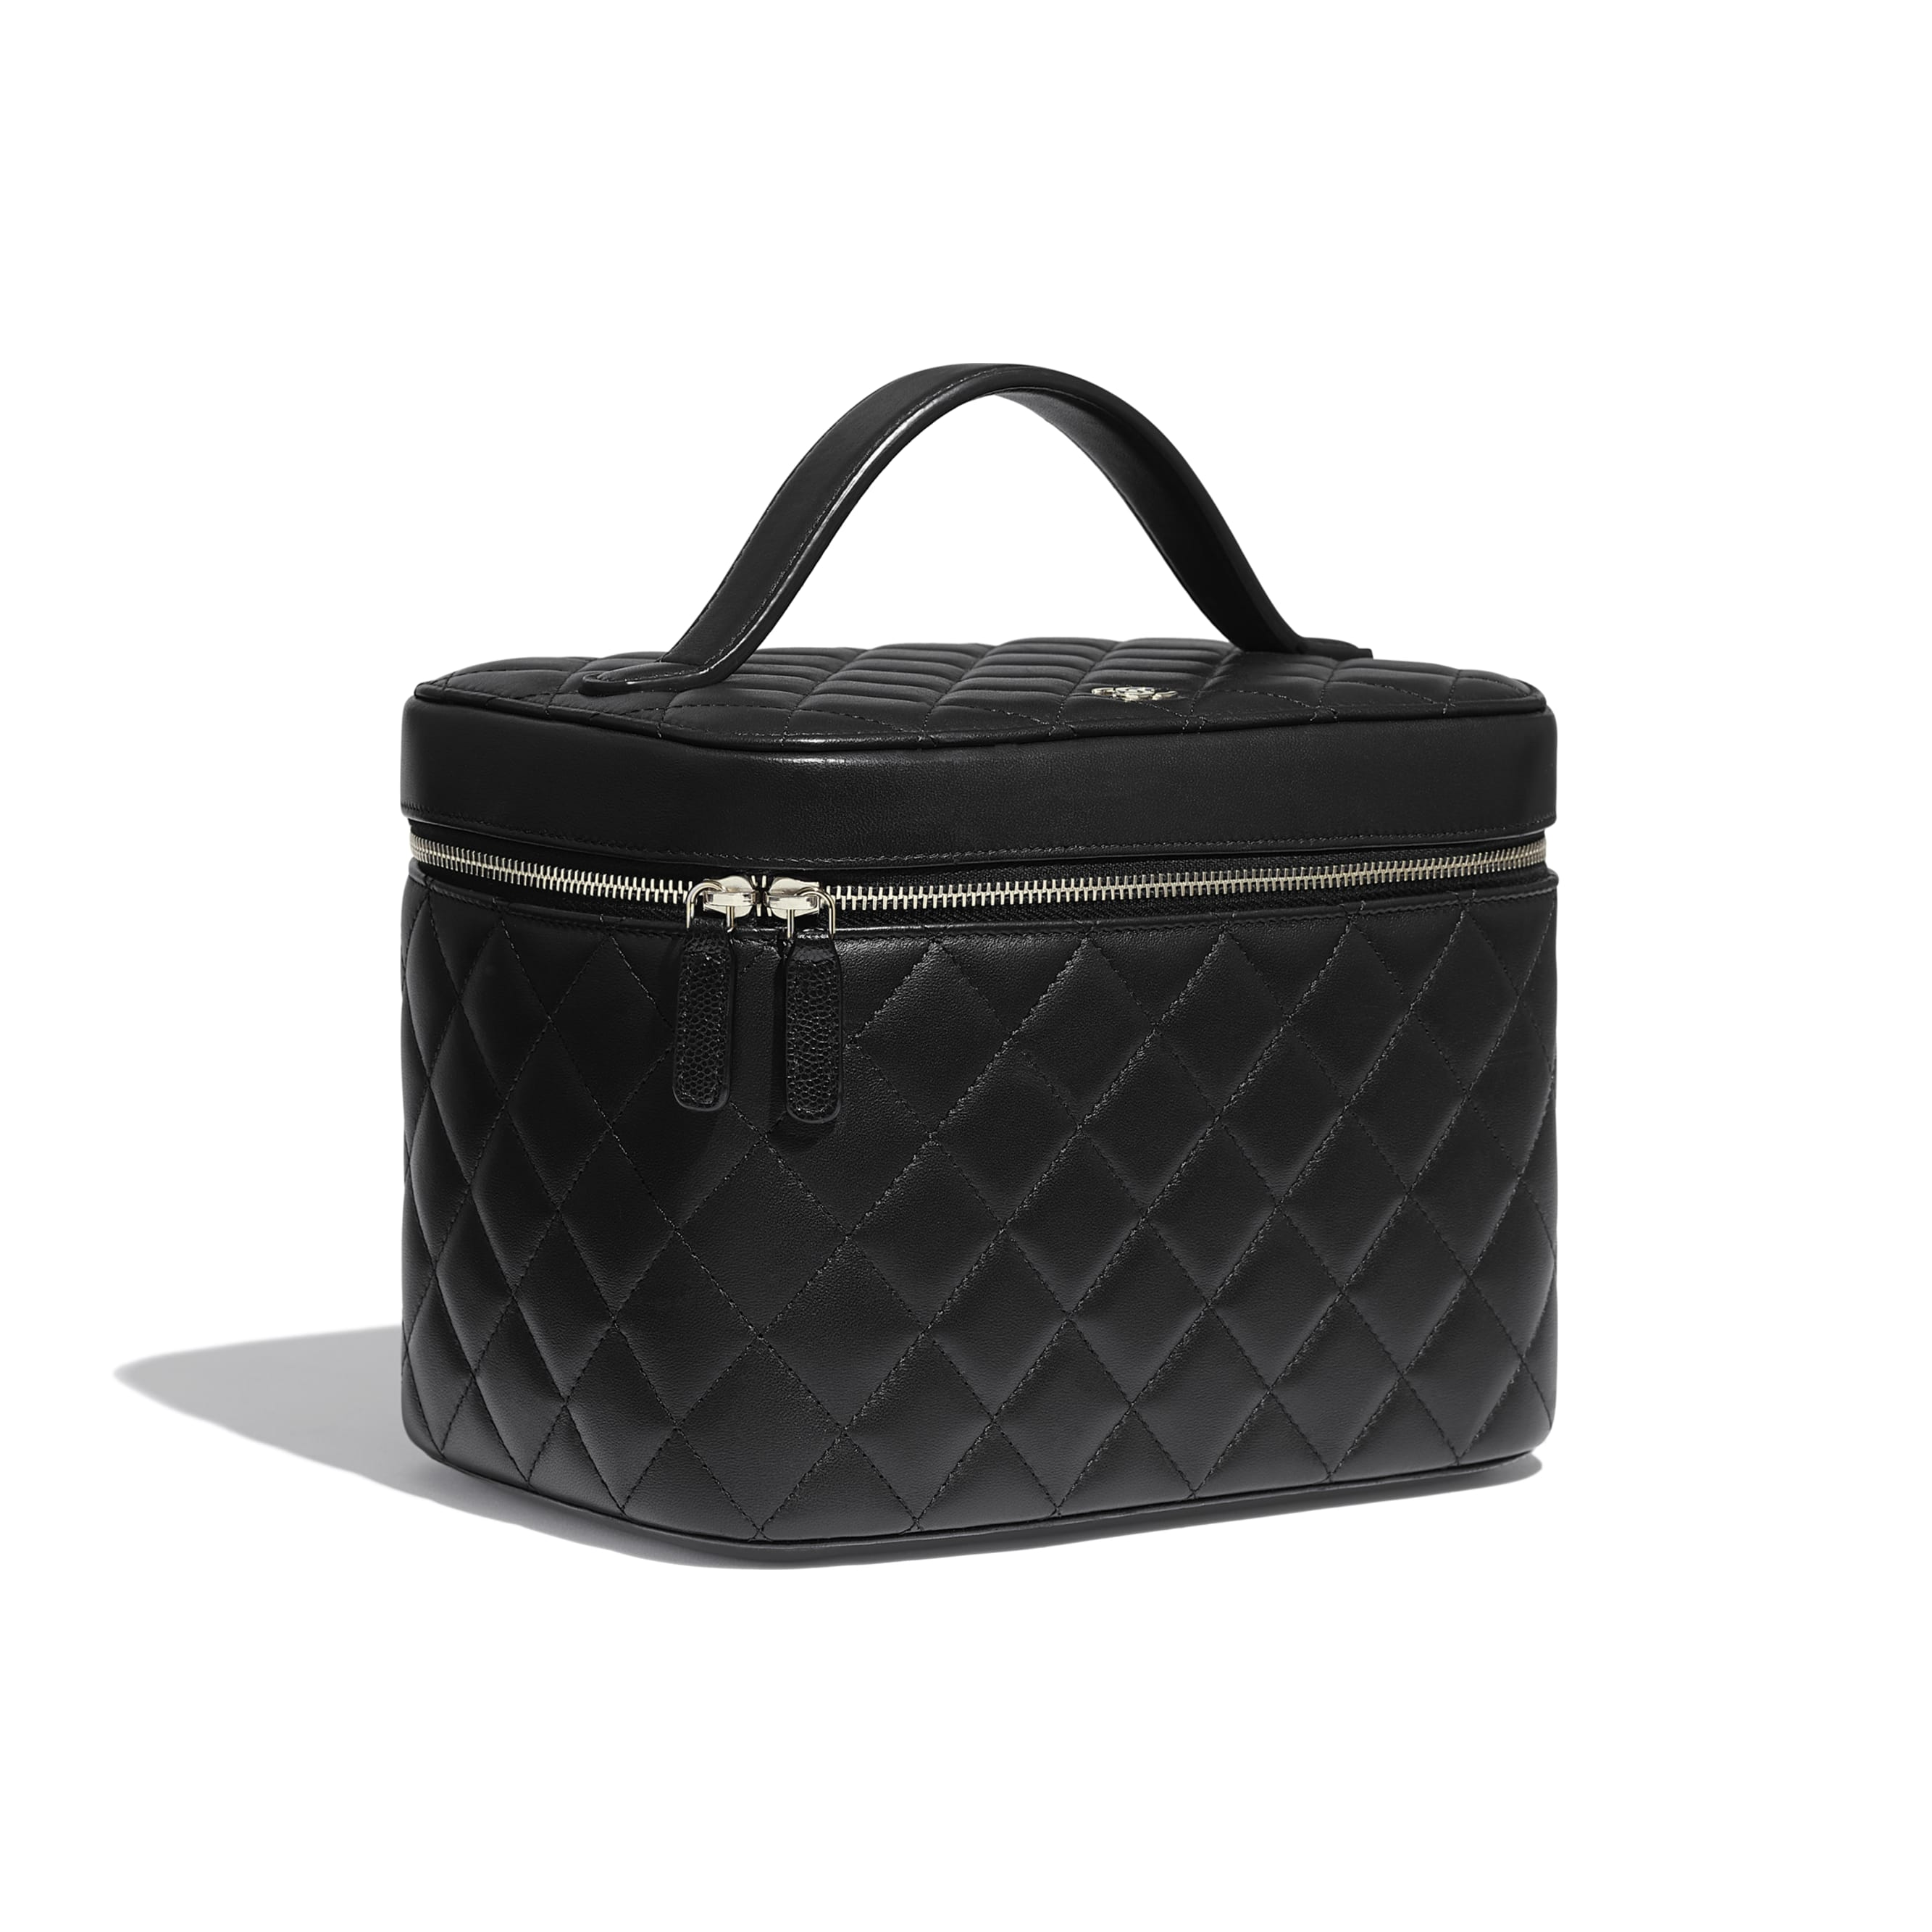 Classic Vanity Pouch - Black - Grained Calfskin & Gold-Tone Metal - Extra view - see standard sized version